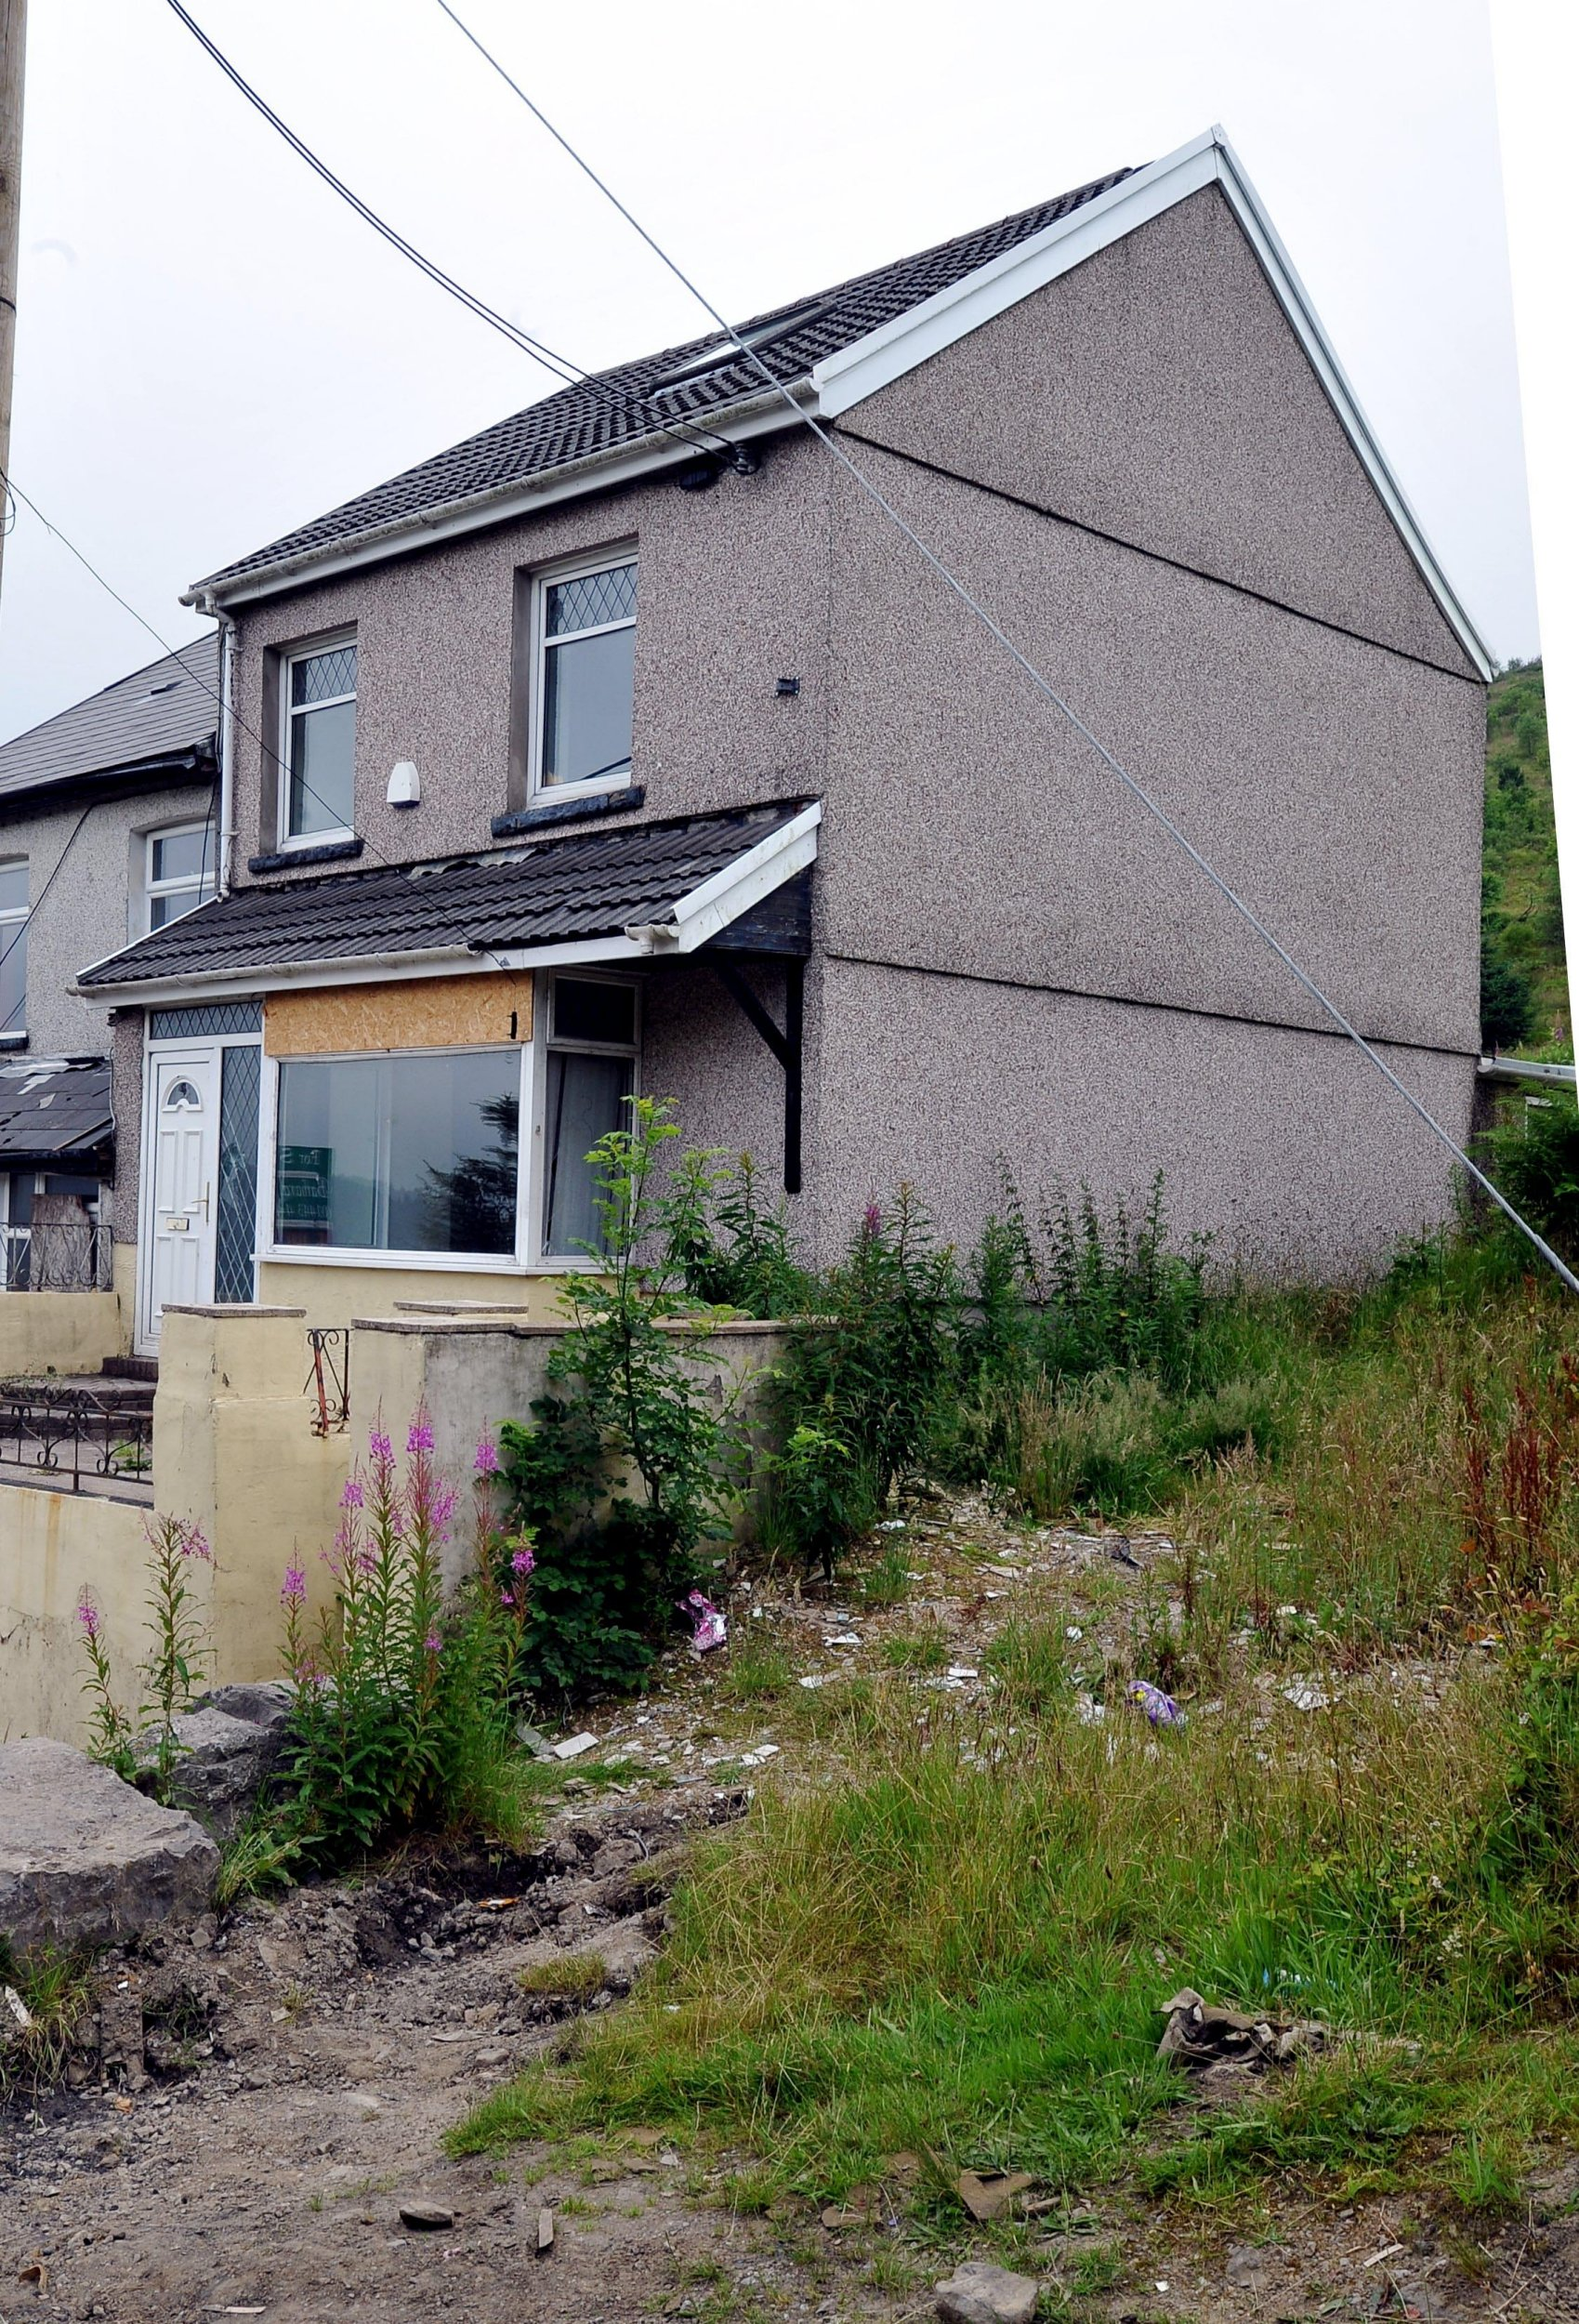 1 Bed House For Sale Three Bed House On Sale For 8 000 In Wales But There S A Catch